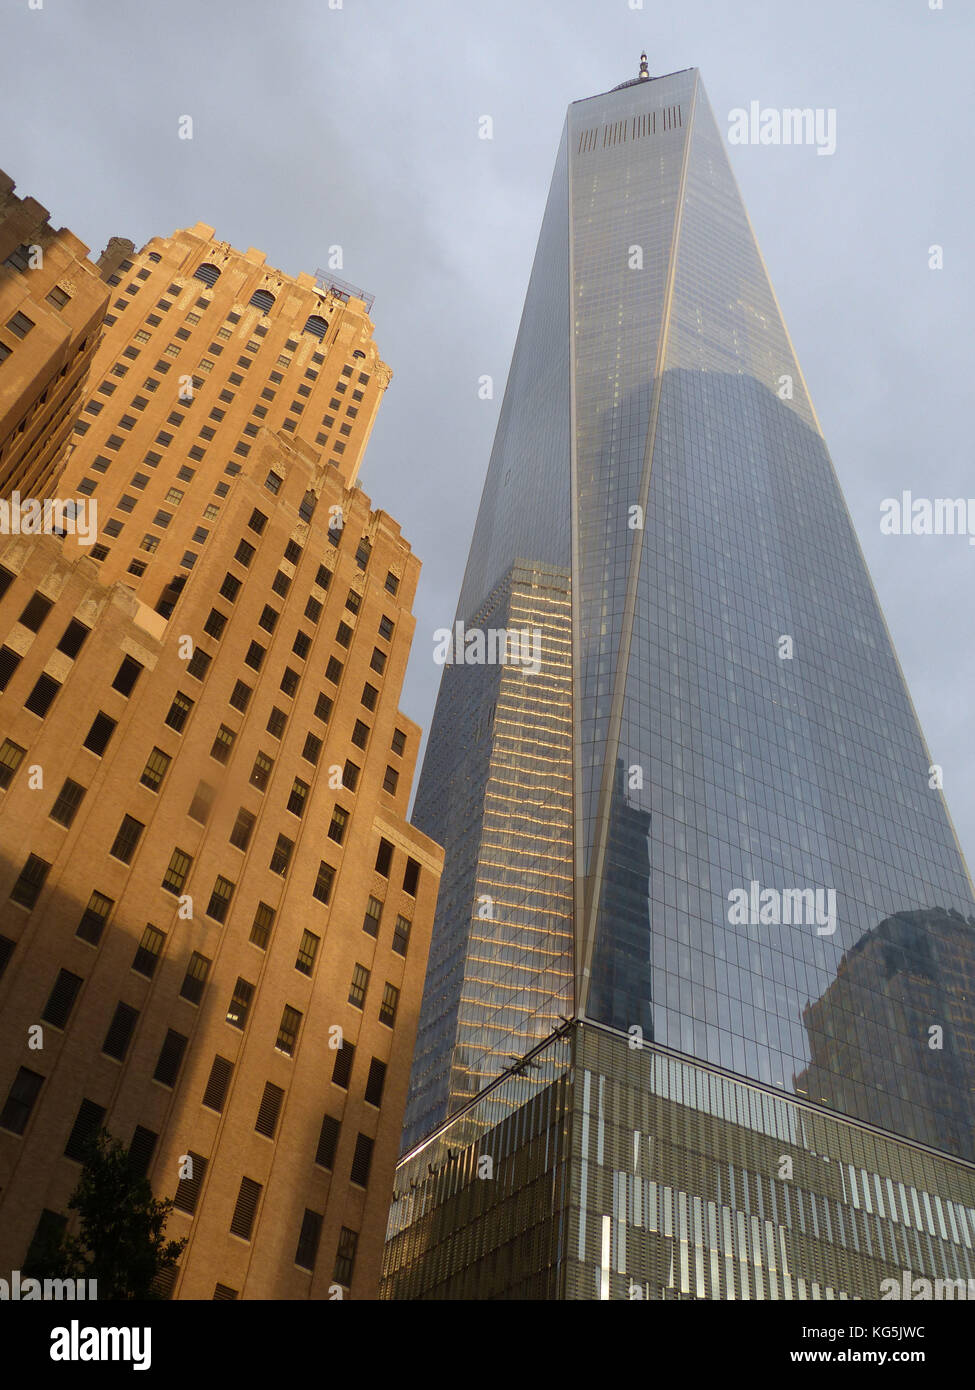 1 WTC or One World Trade Center with the World Financial Center, designed by Architect David Childs - Stock Image